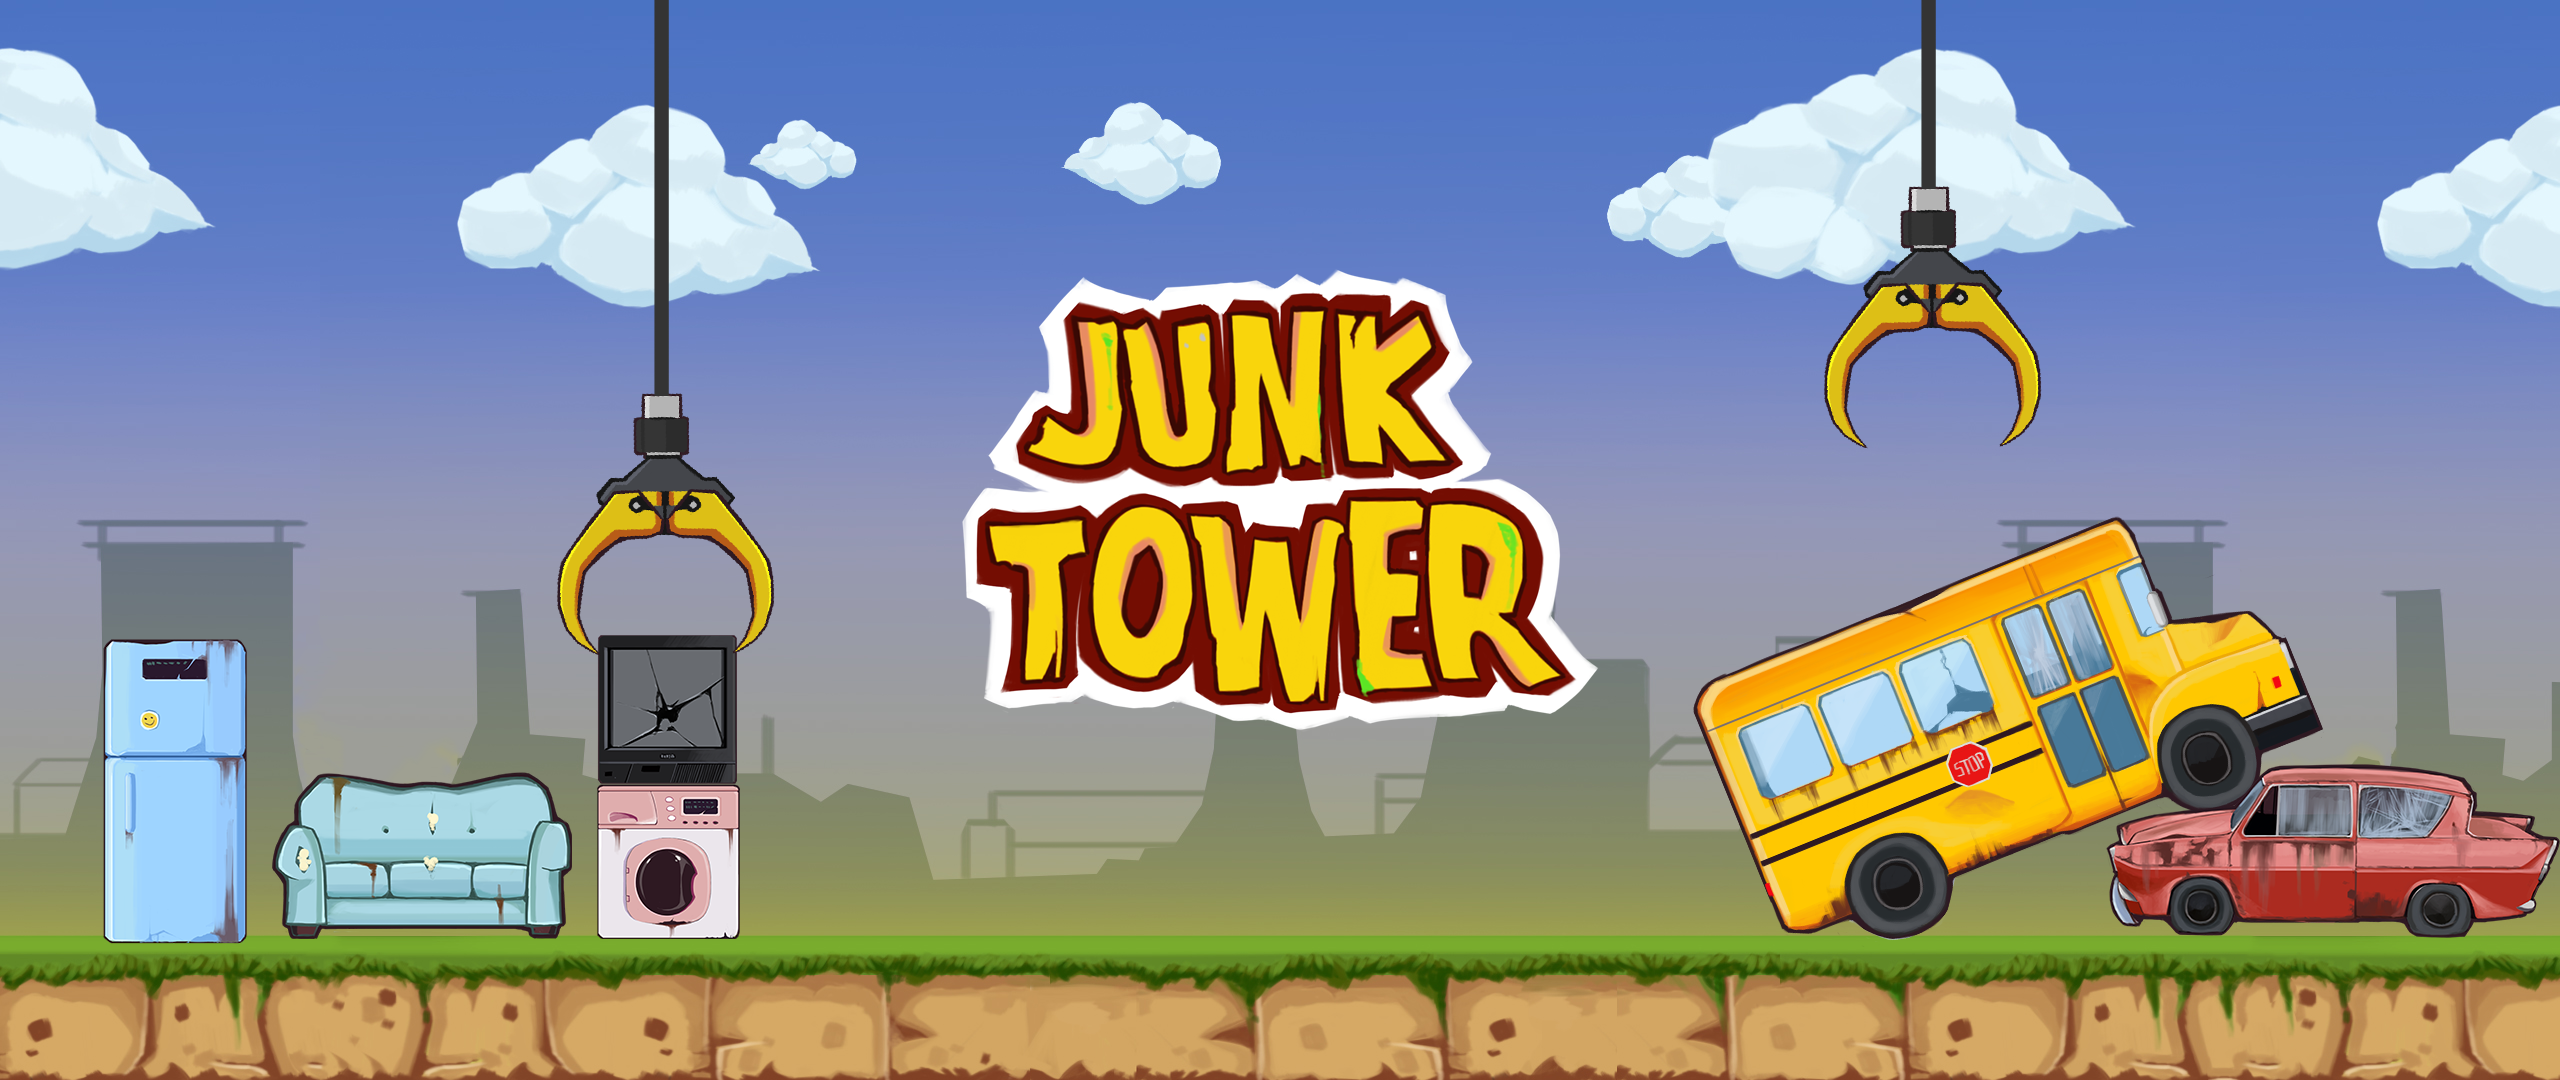 Junk Tower